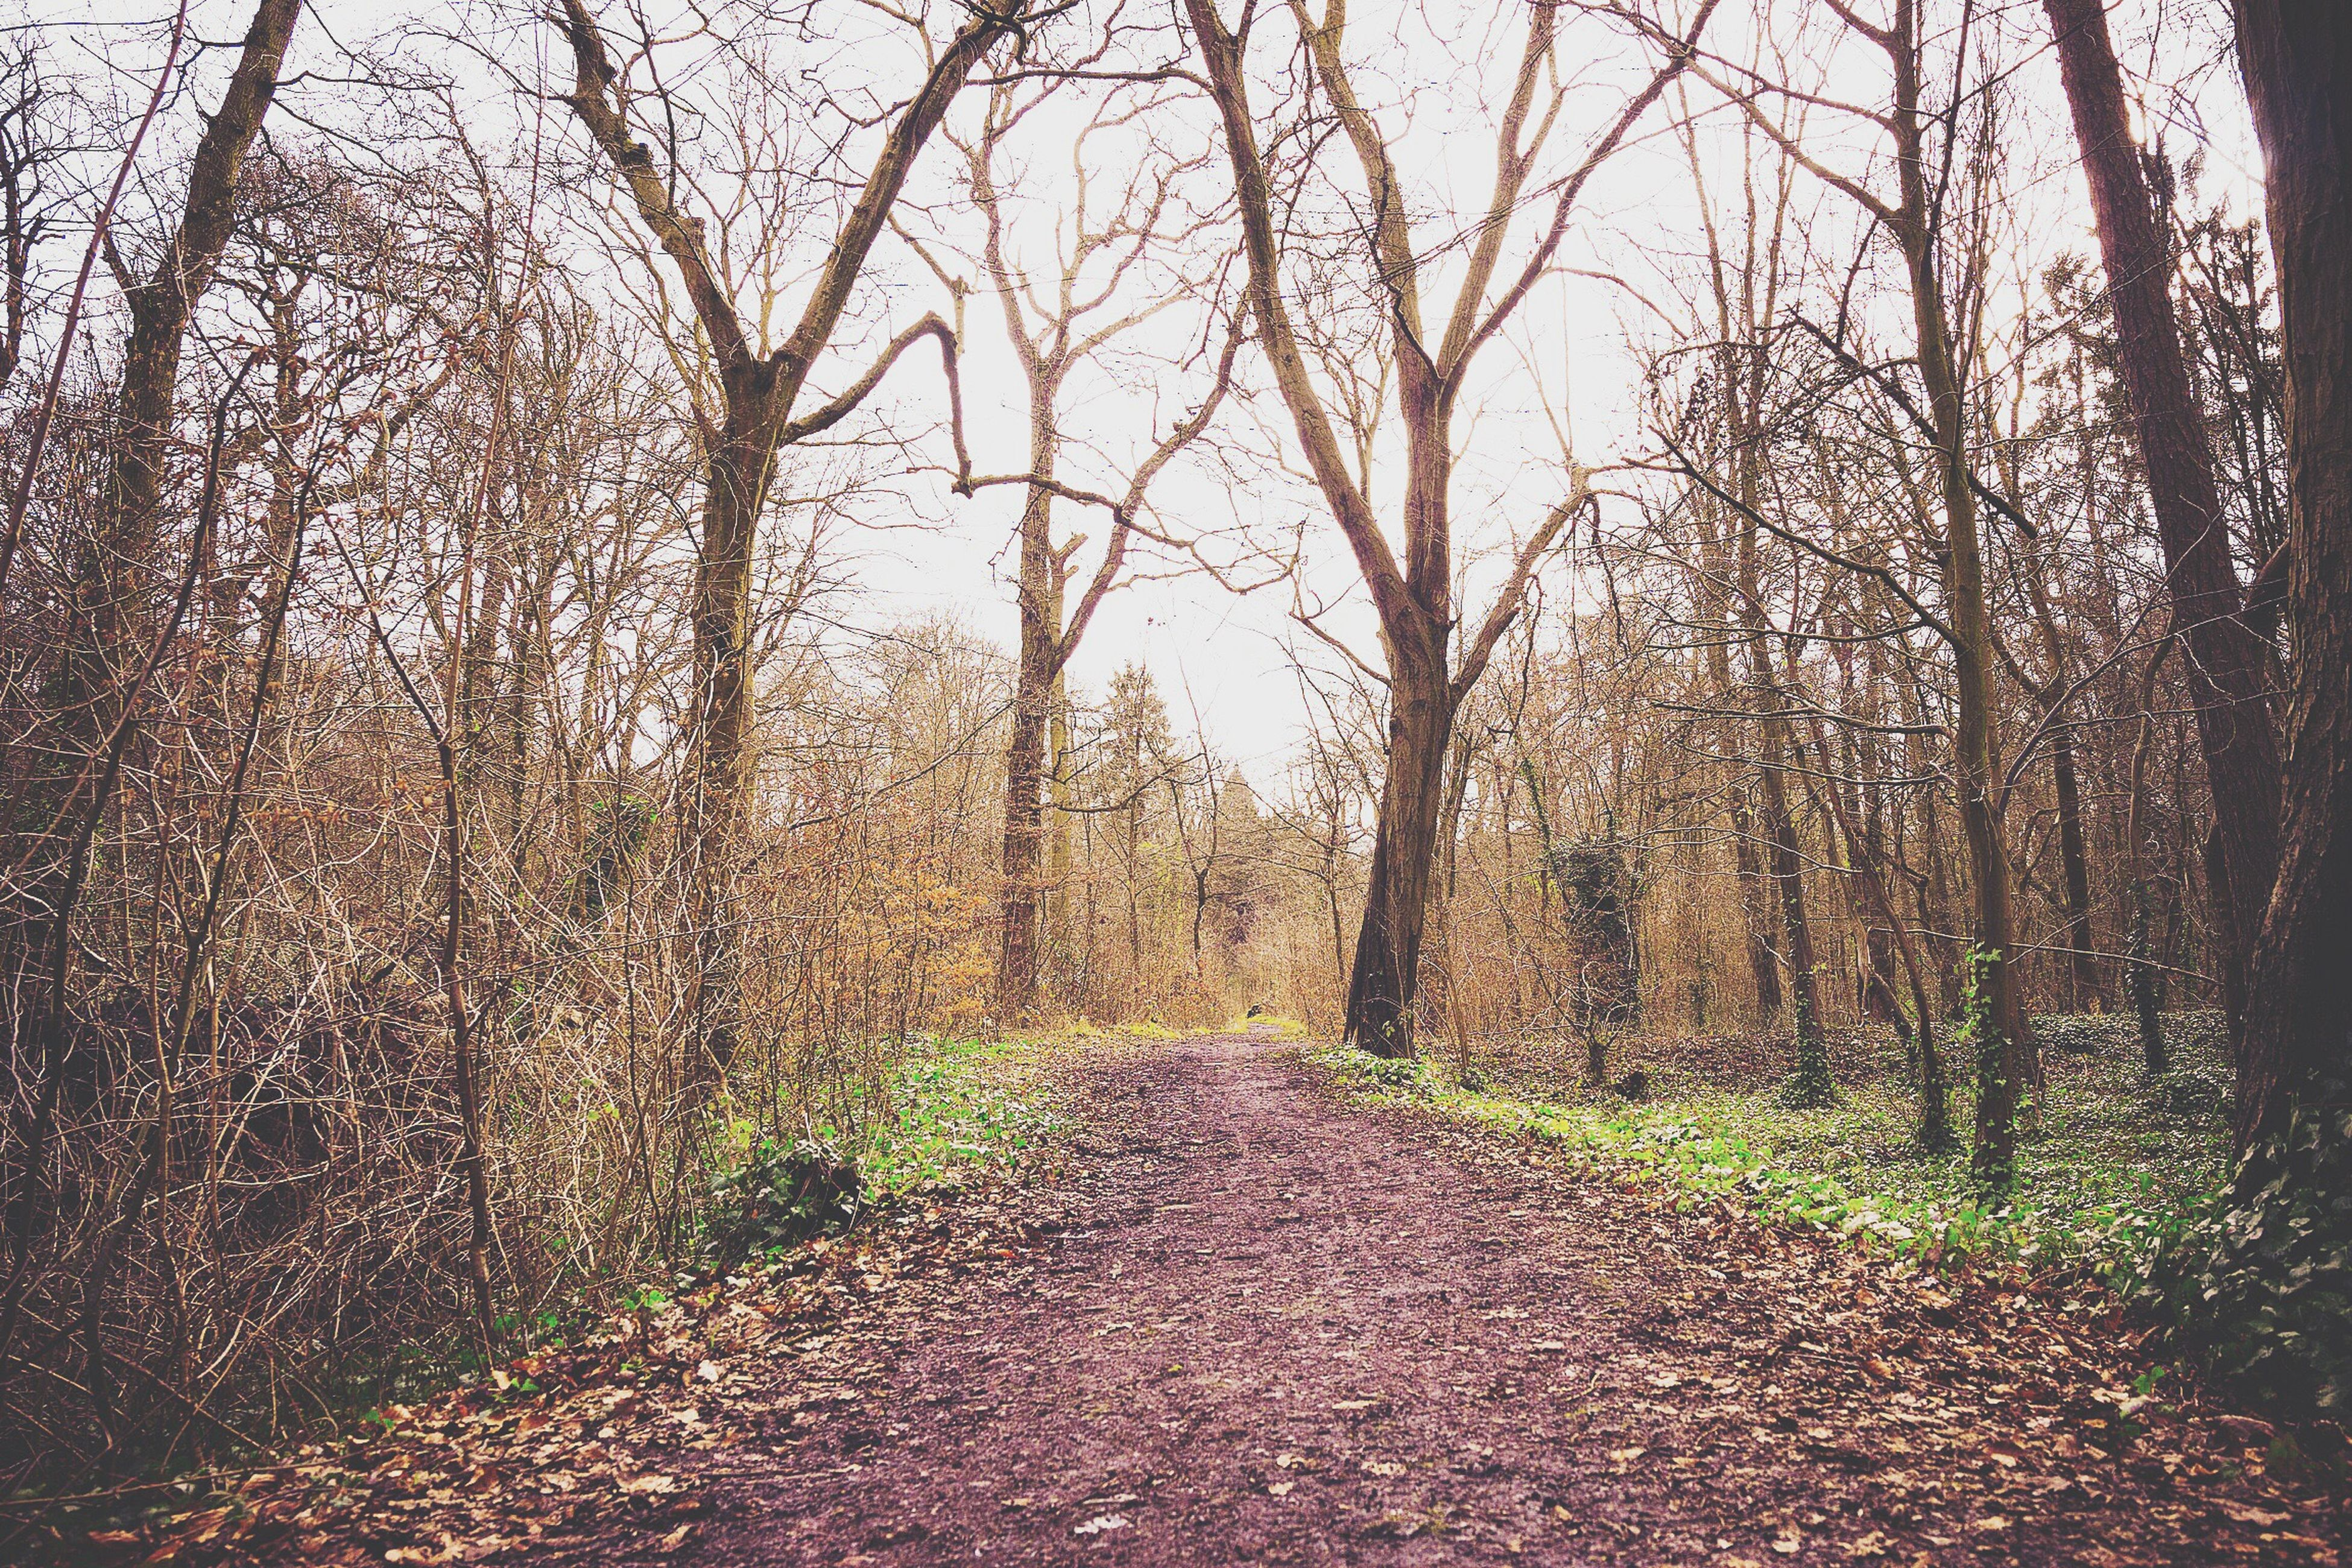 tree, the way forward, tranquility, nature, tranquil scene, branch, autumn, growth, bare tree, beauty in nature, scenics, dirt road, diminishing perspective, forest, footpath, landscape, tree trunk, leaf, non-urban scene, outdoors